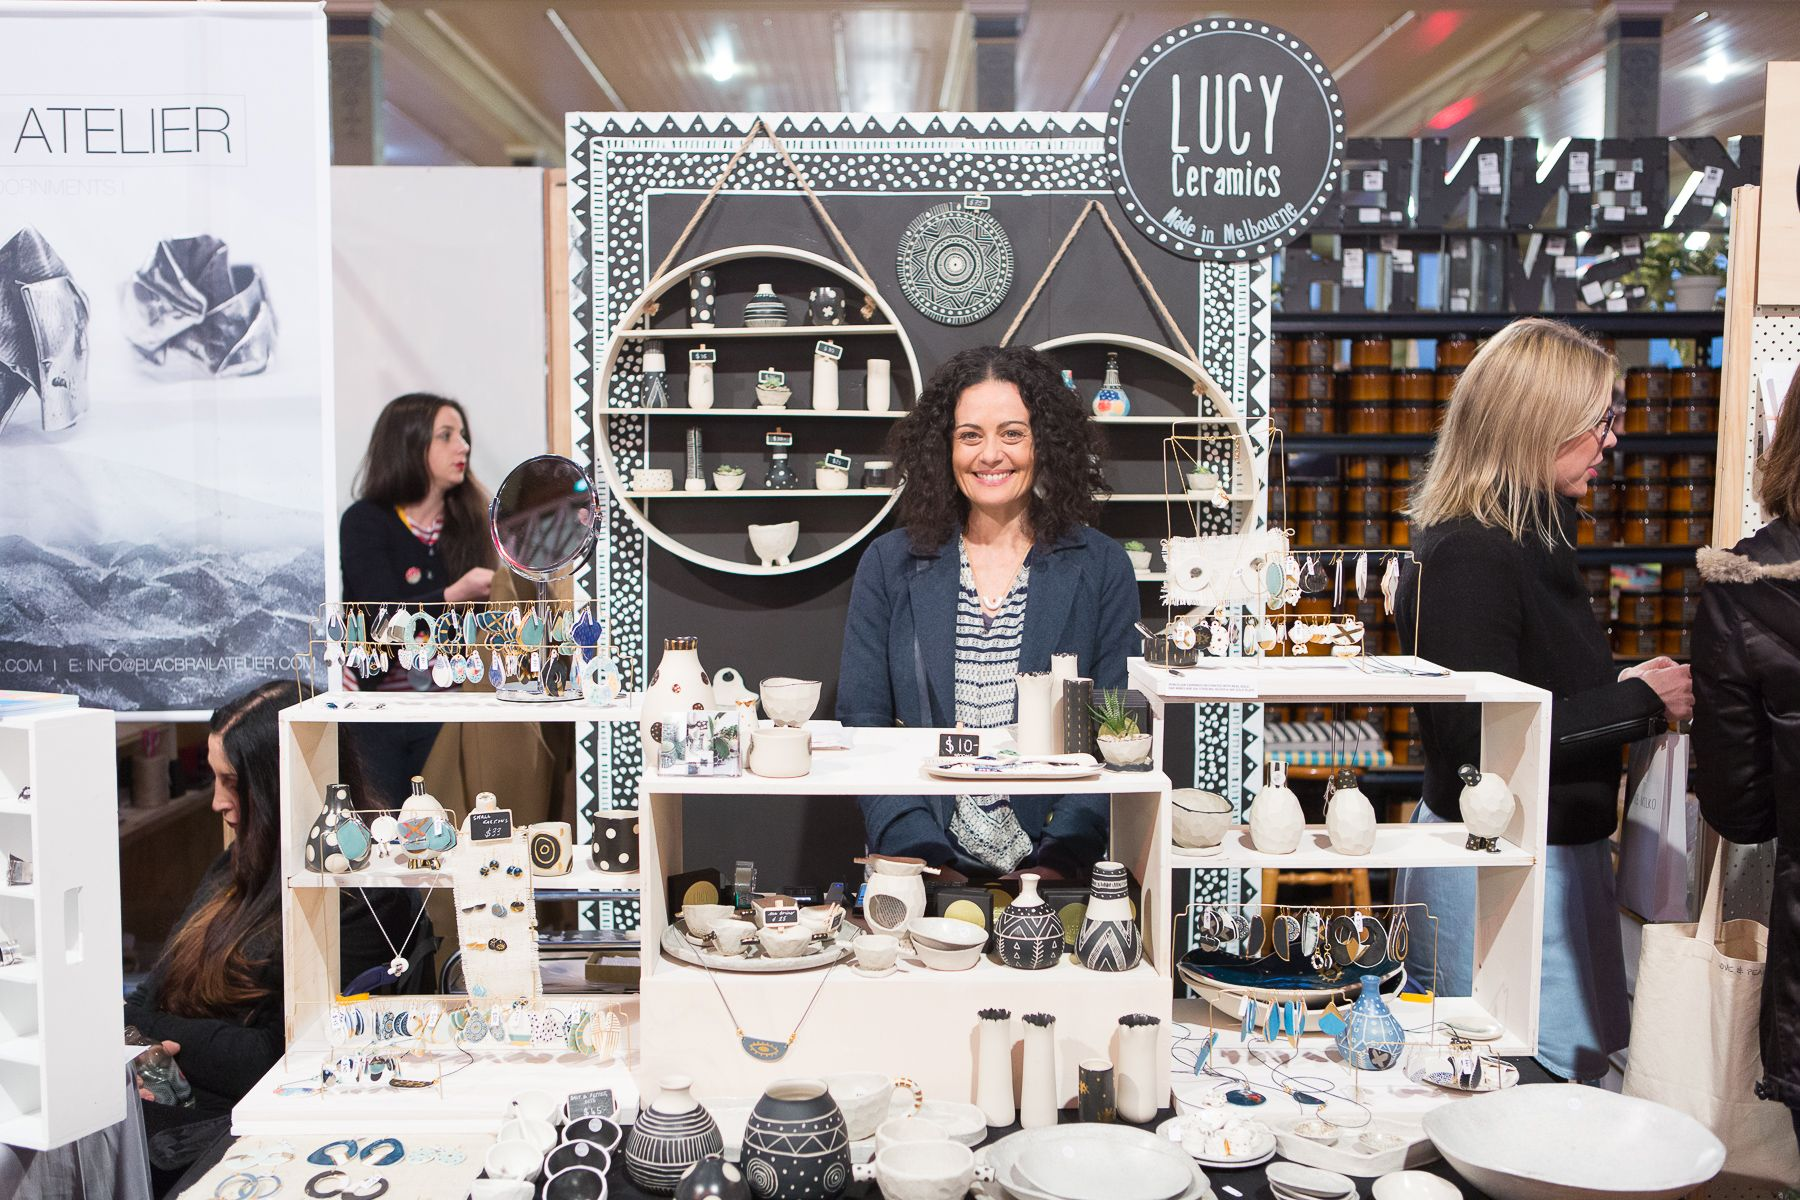 Features Lucy Ceramics Captured Mark Lobo Melbourne Aw16 Market. Debut